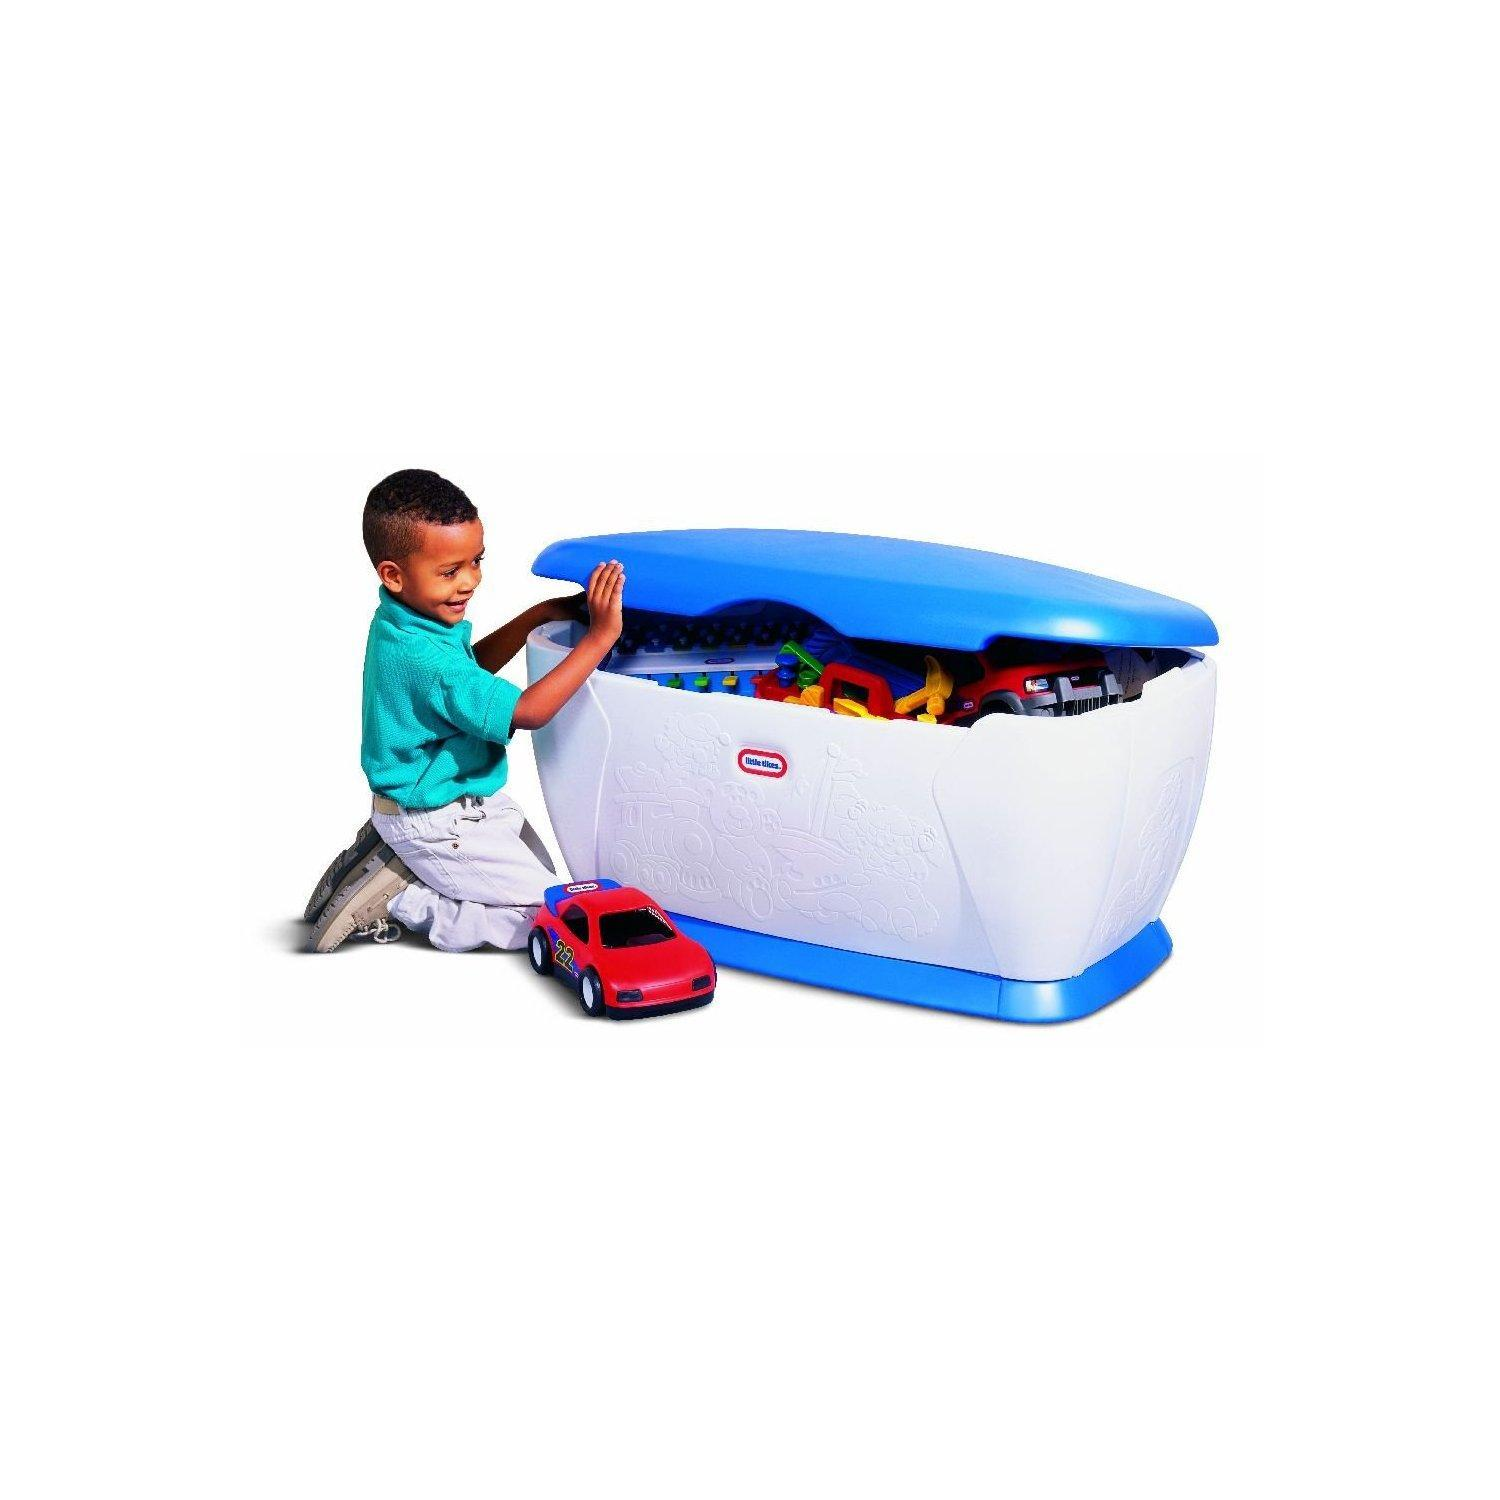 Little Tikes Giant Toy Chest by OJ Commerce $124.99